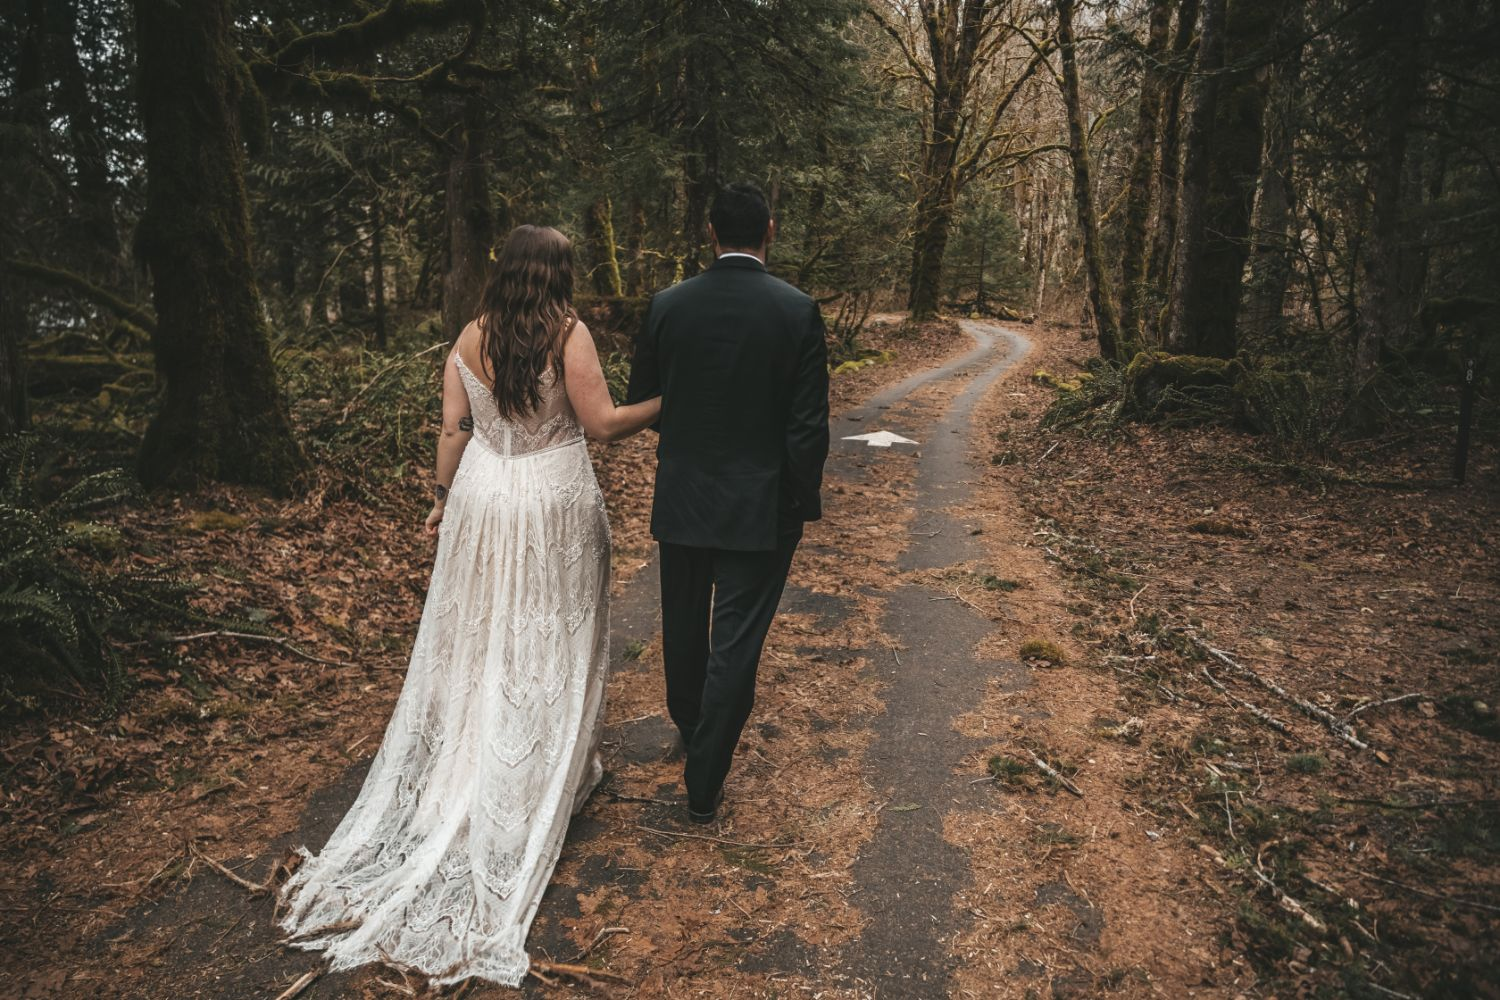 couple-walks-forest